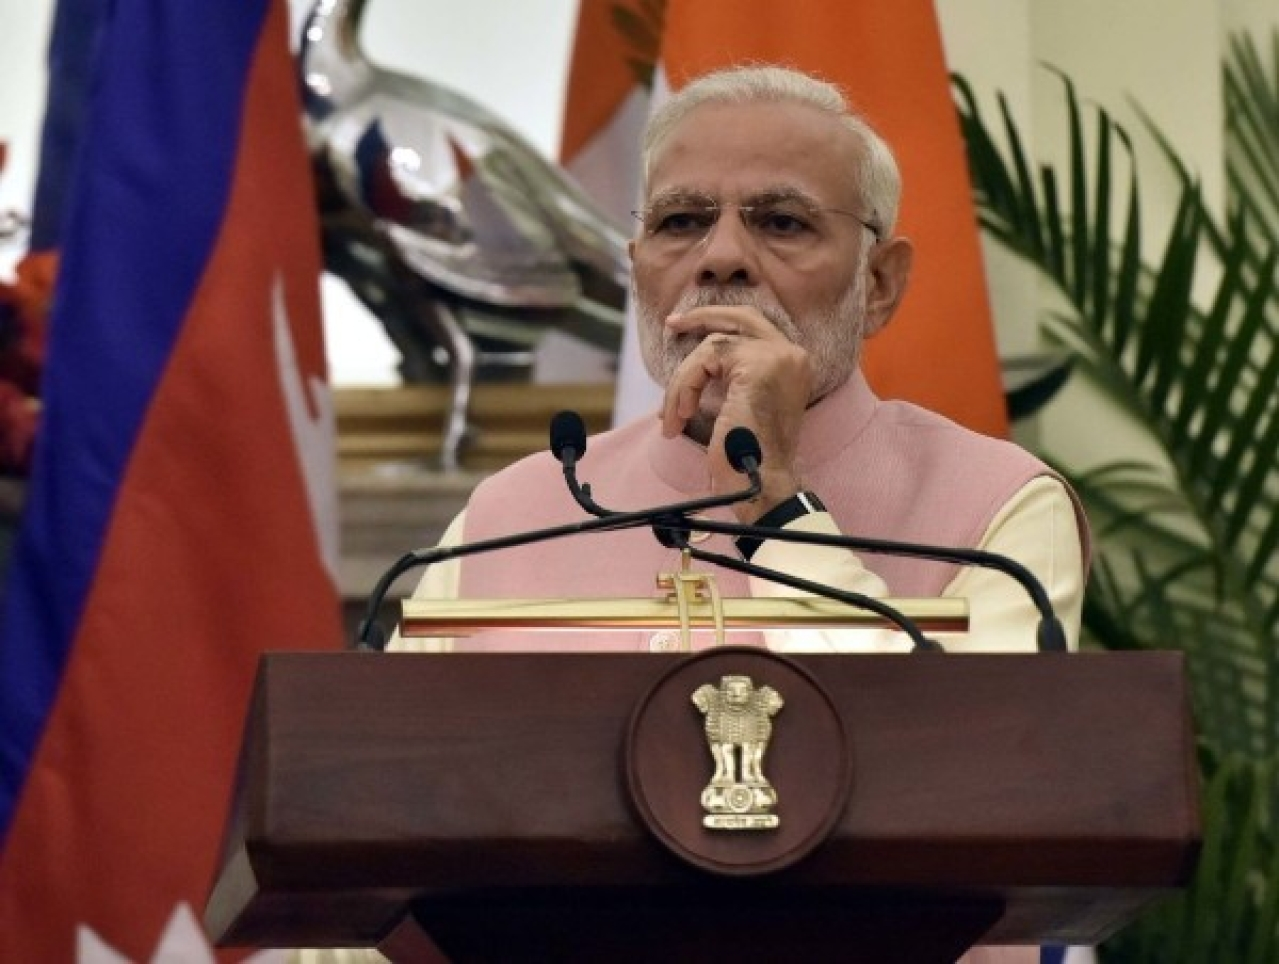 Prime Minister Modi has said he welcomes reasoned criticism but that all he gets are allegations. (Sonu Mehta/Hindustan Times via Getty Images)